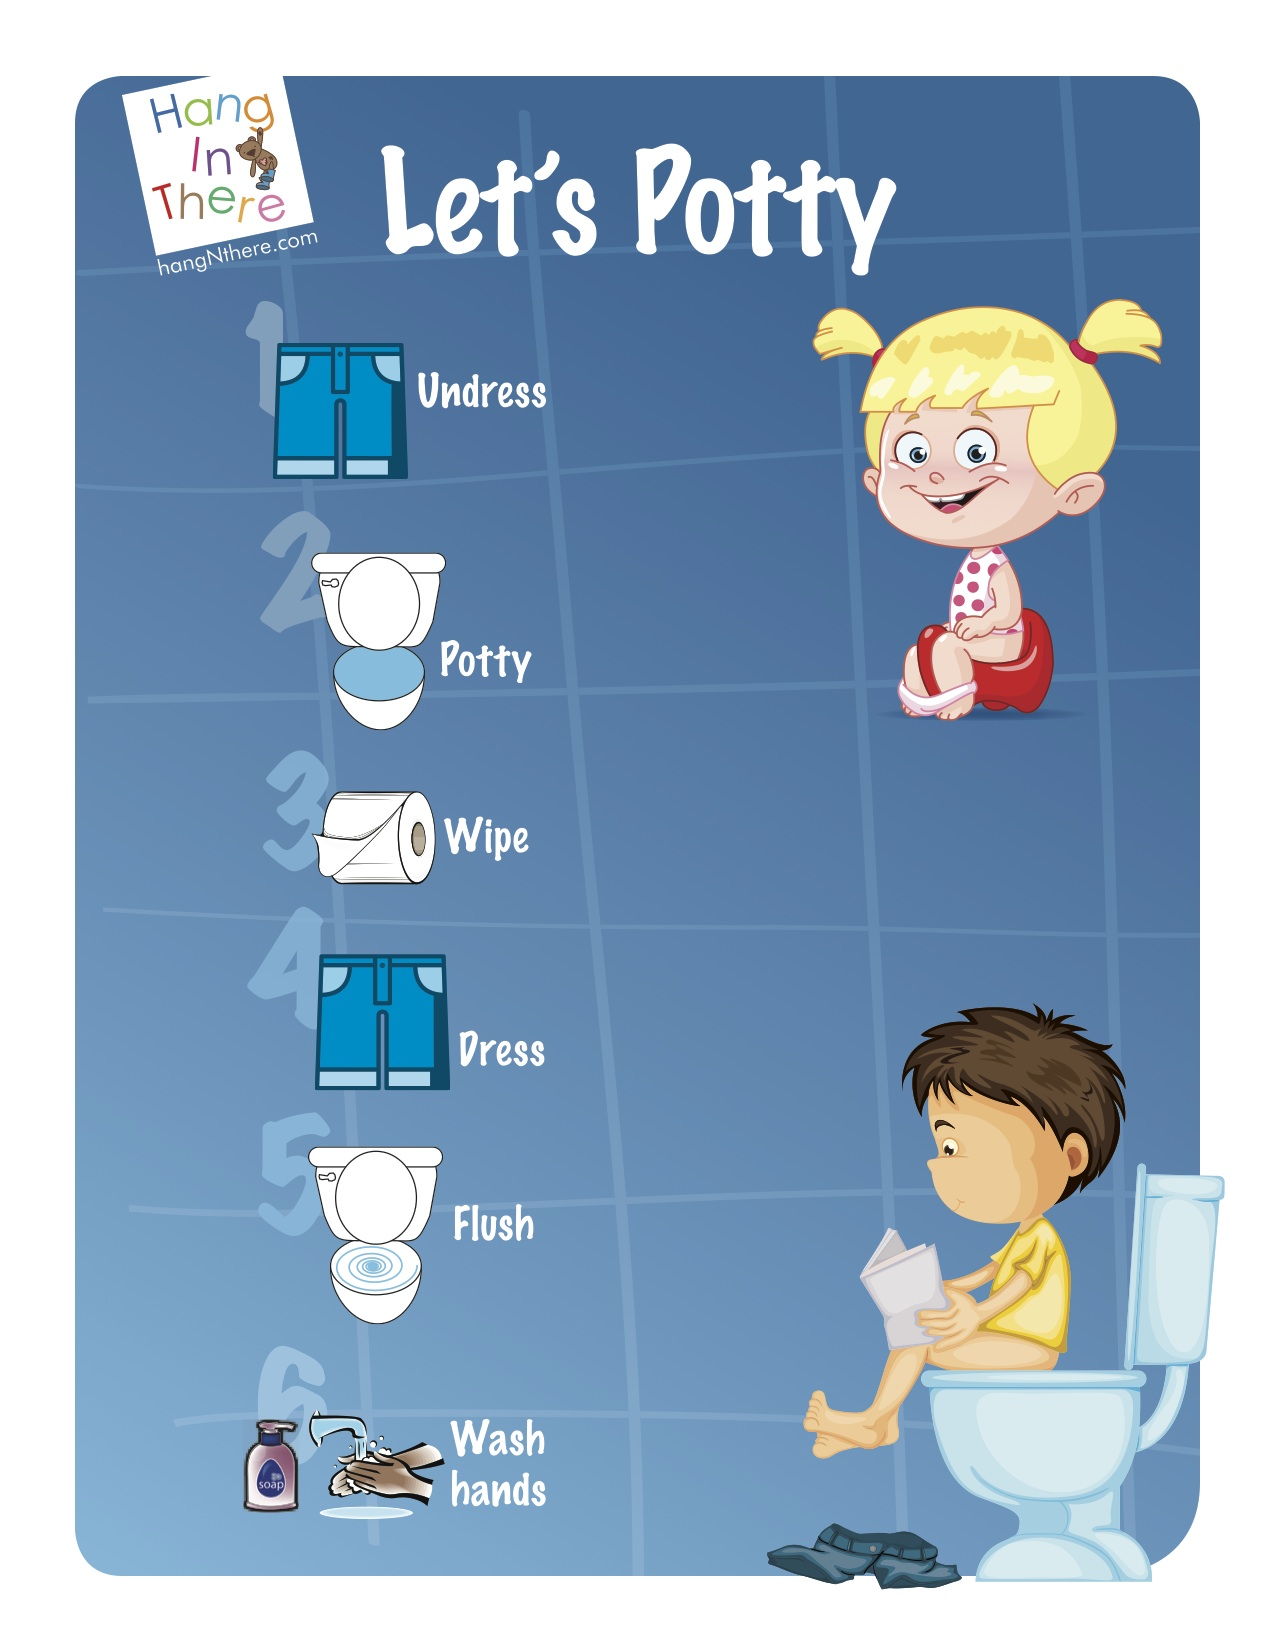 Post This Potty Training Sheet For Your Toddler These Pictures Are A Visual Guide To Help Her